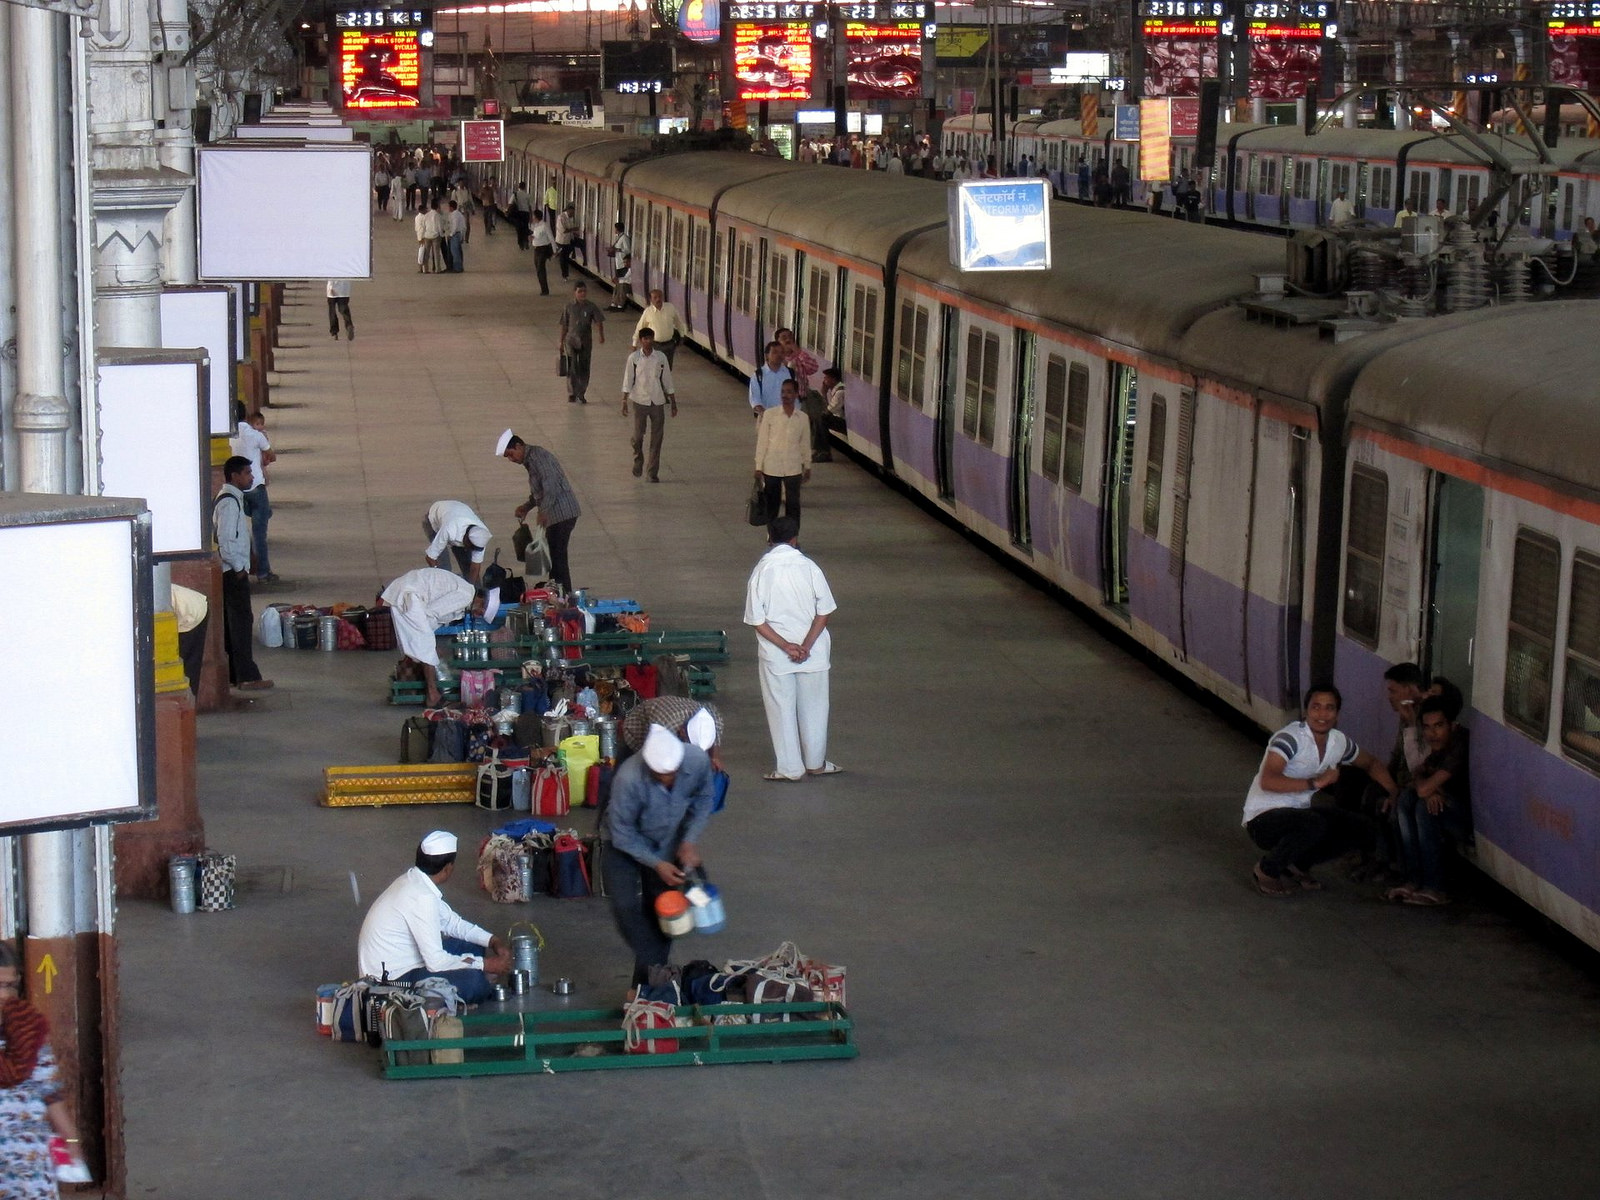 Dabbawalas in a train station | © travelwayoflife/Flickr